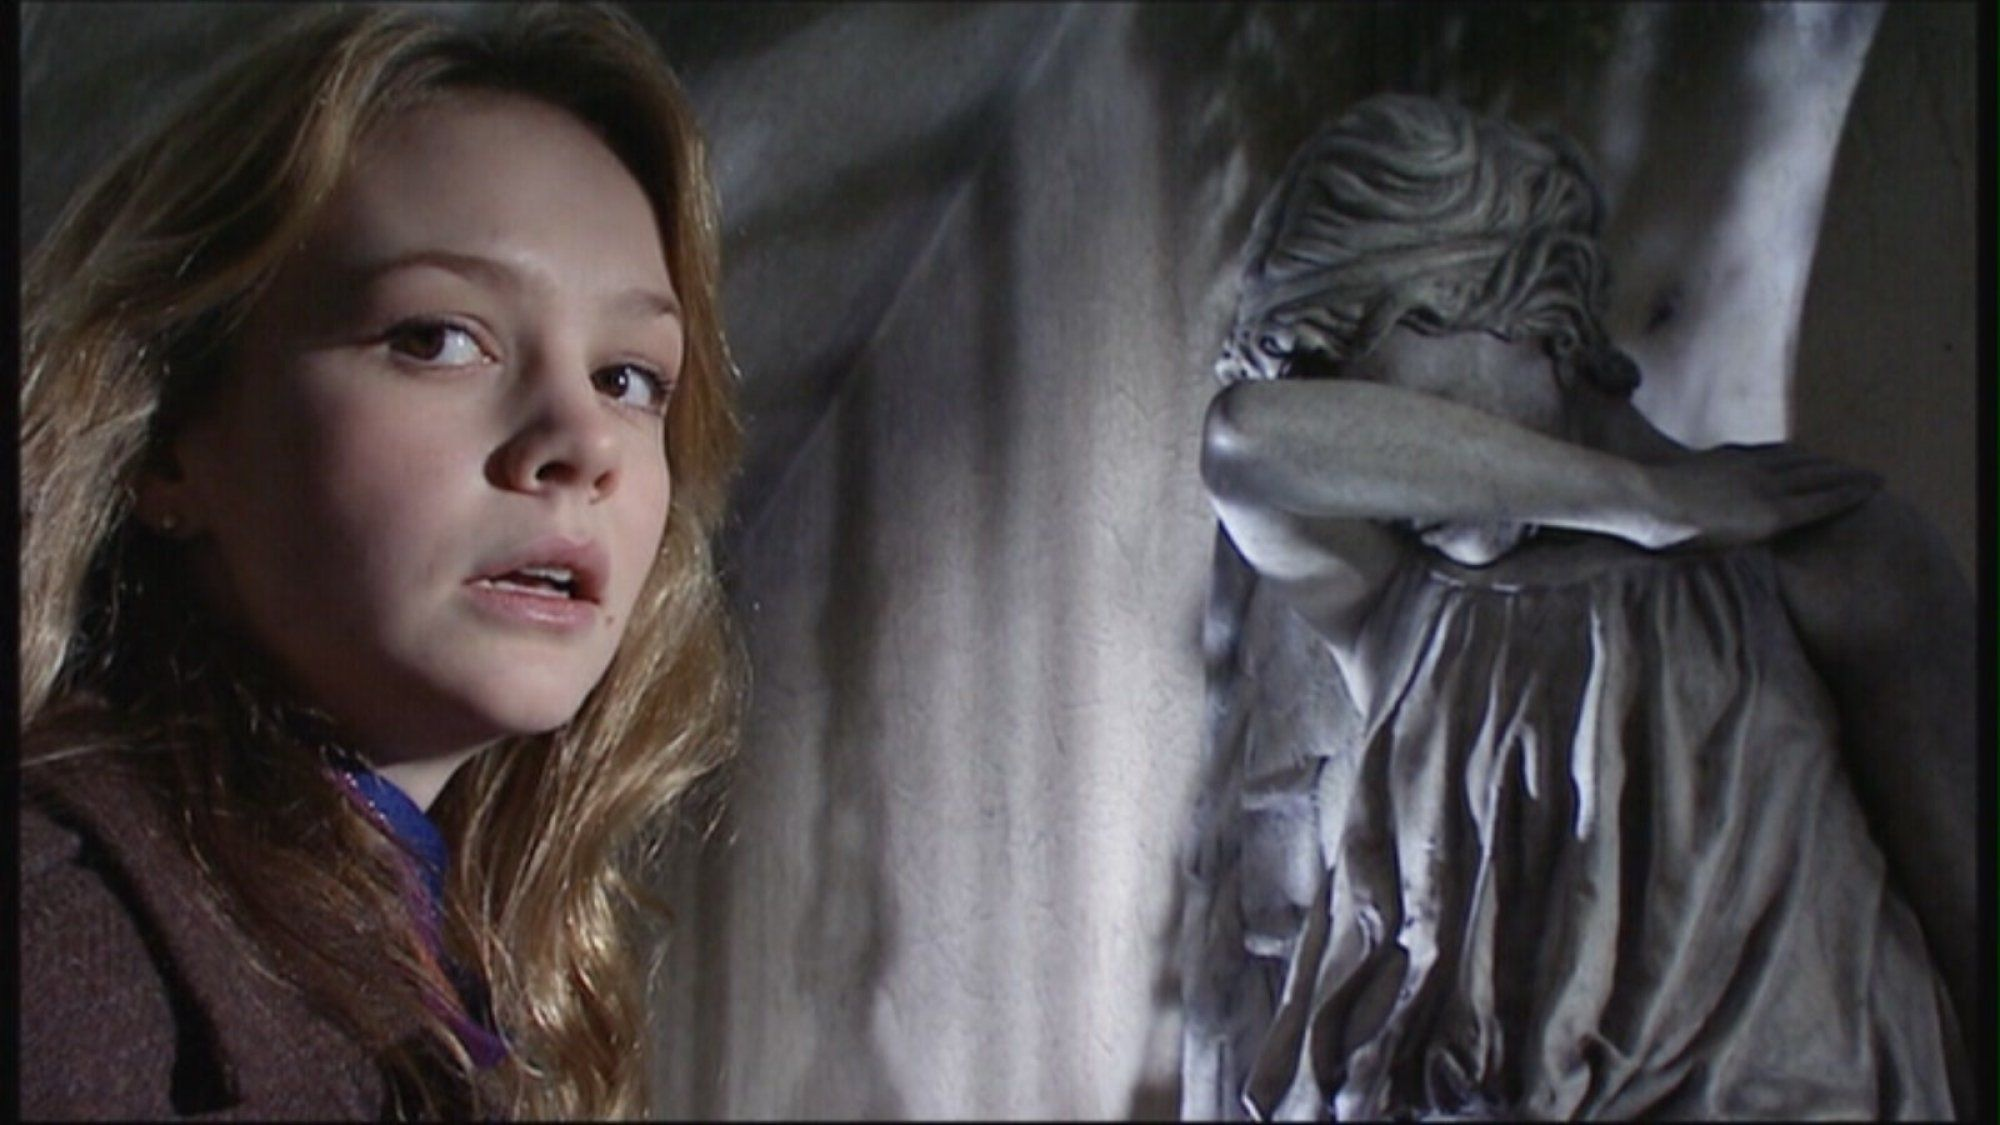 Doctor Who confirms return date for Weeping Angels in new trailer